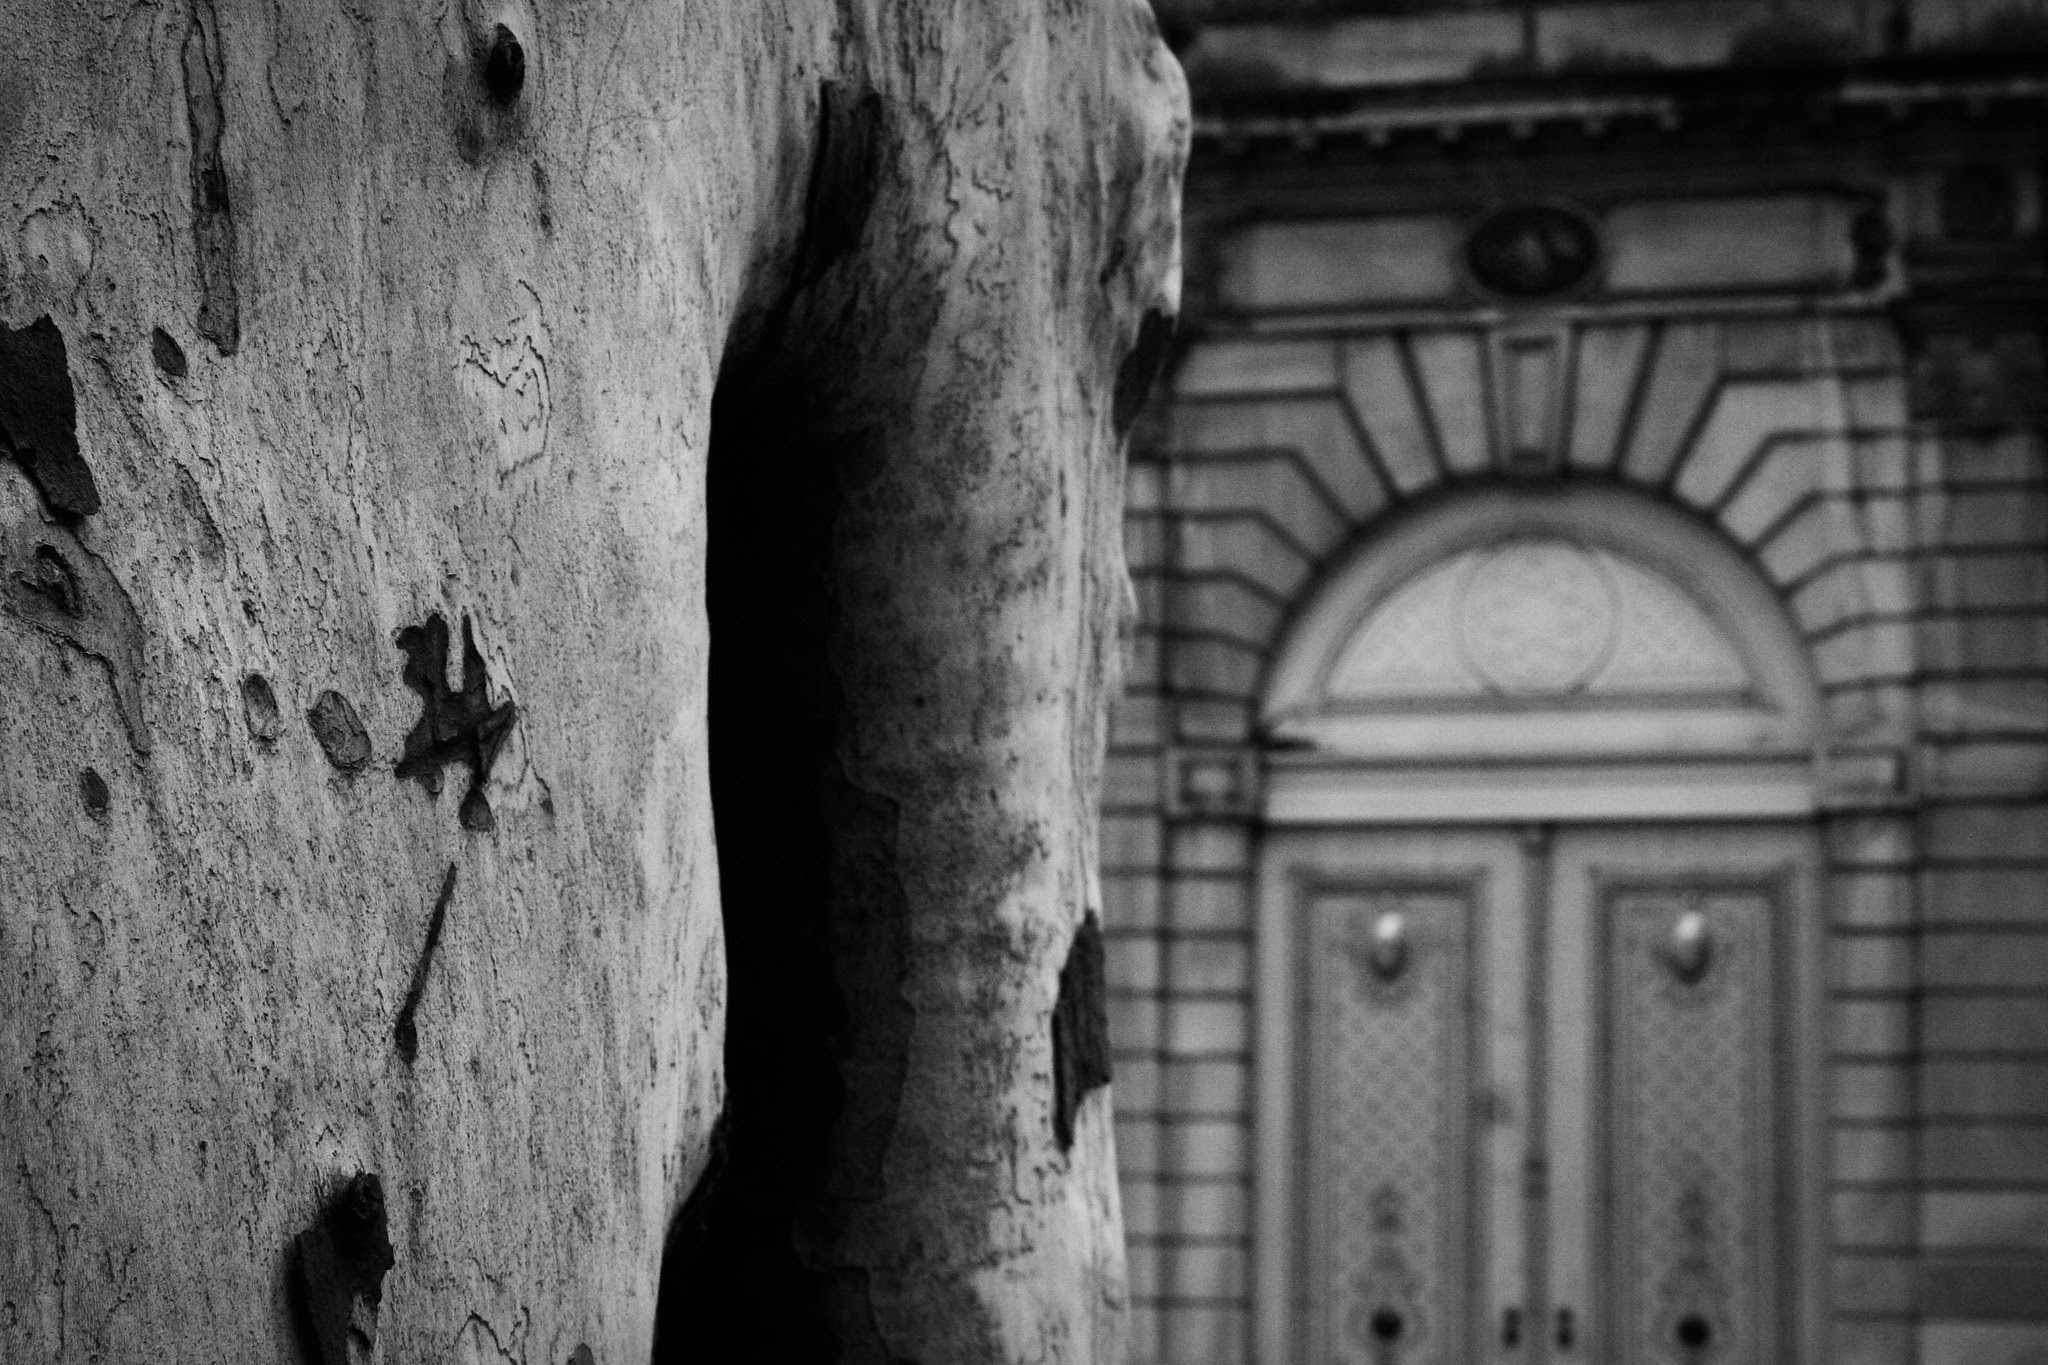 A plane tree and a doorway.